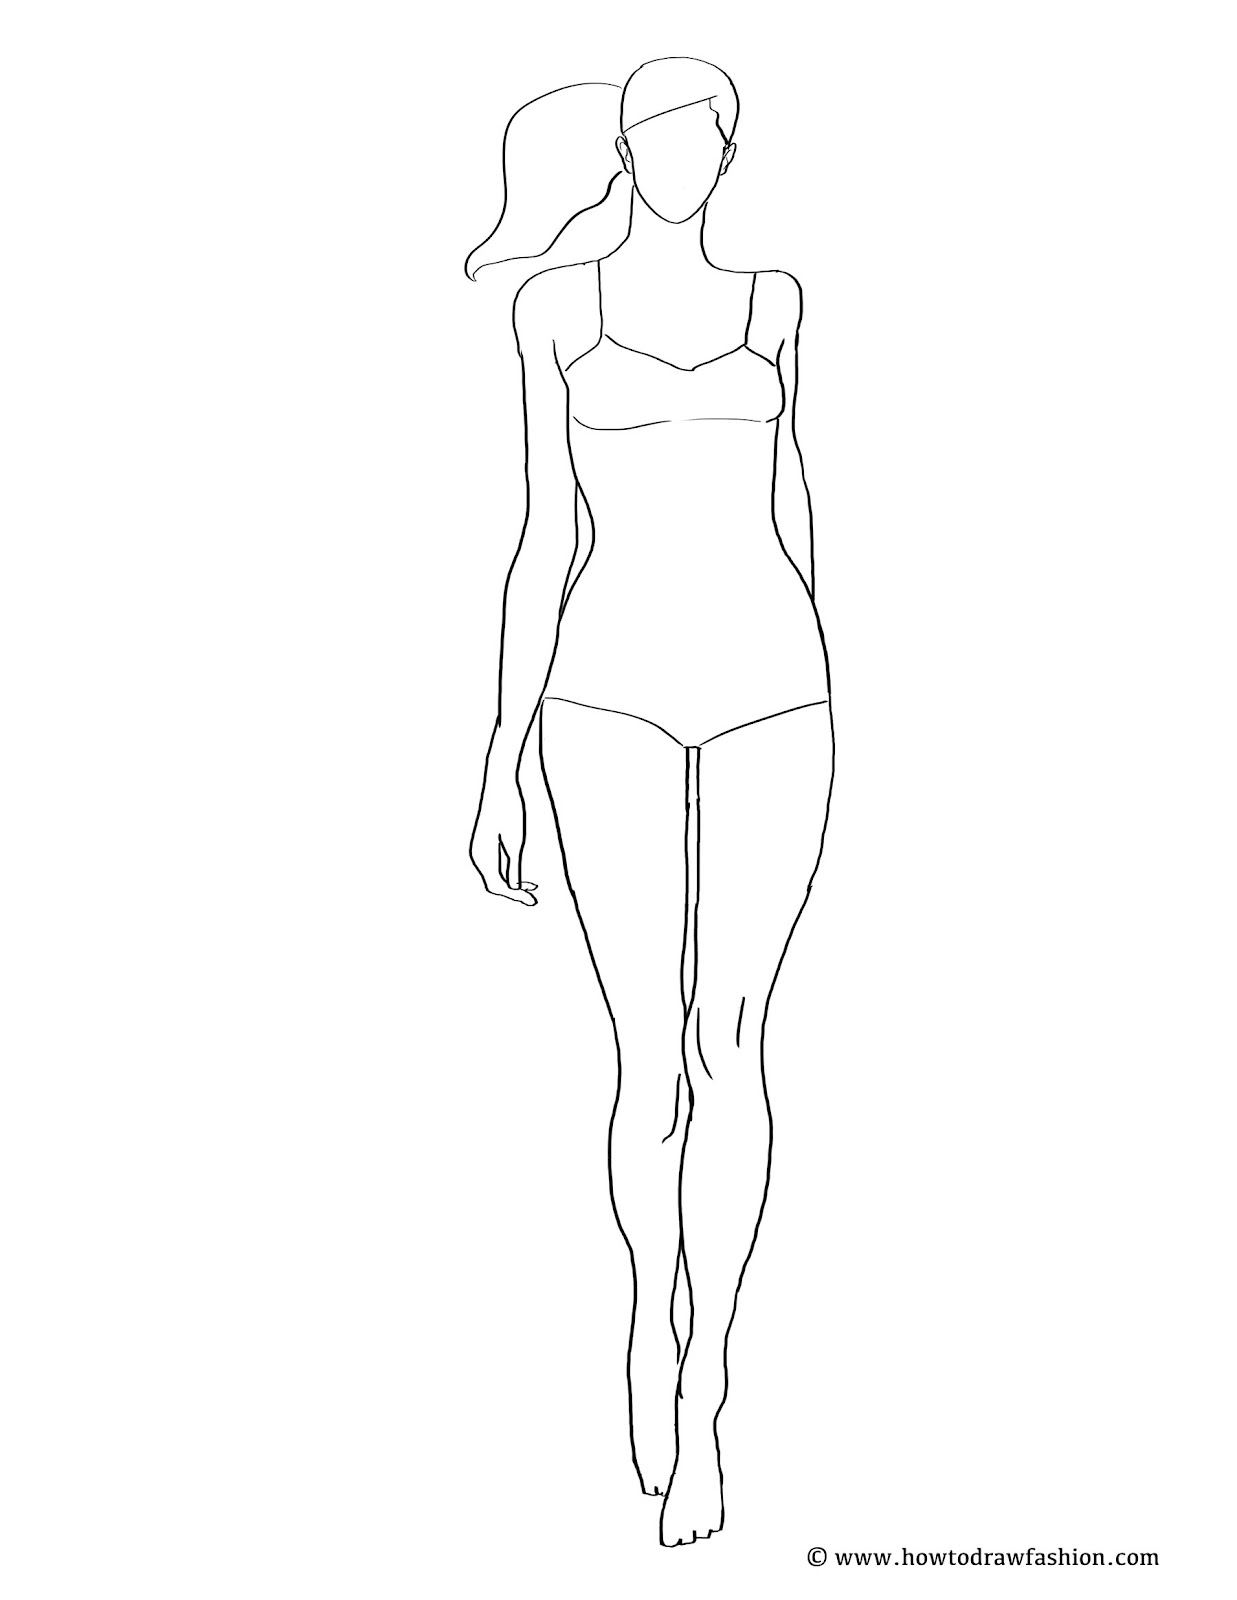 Fashion drawing free at free for for Textiles body templates